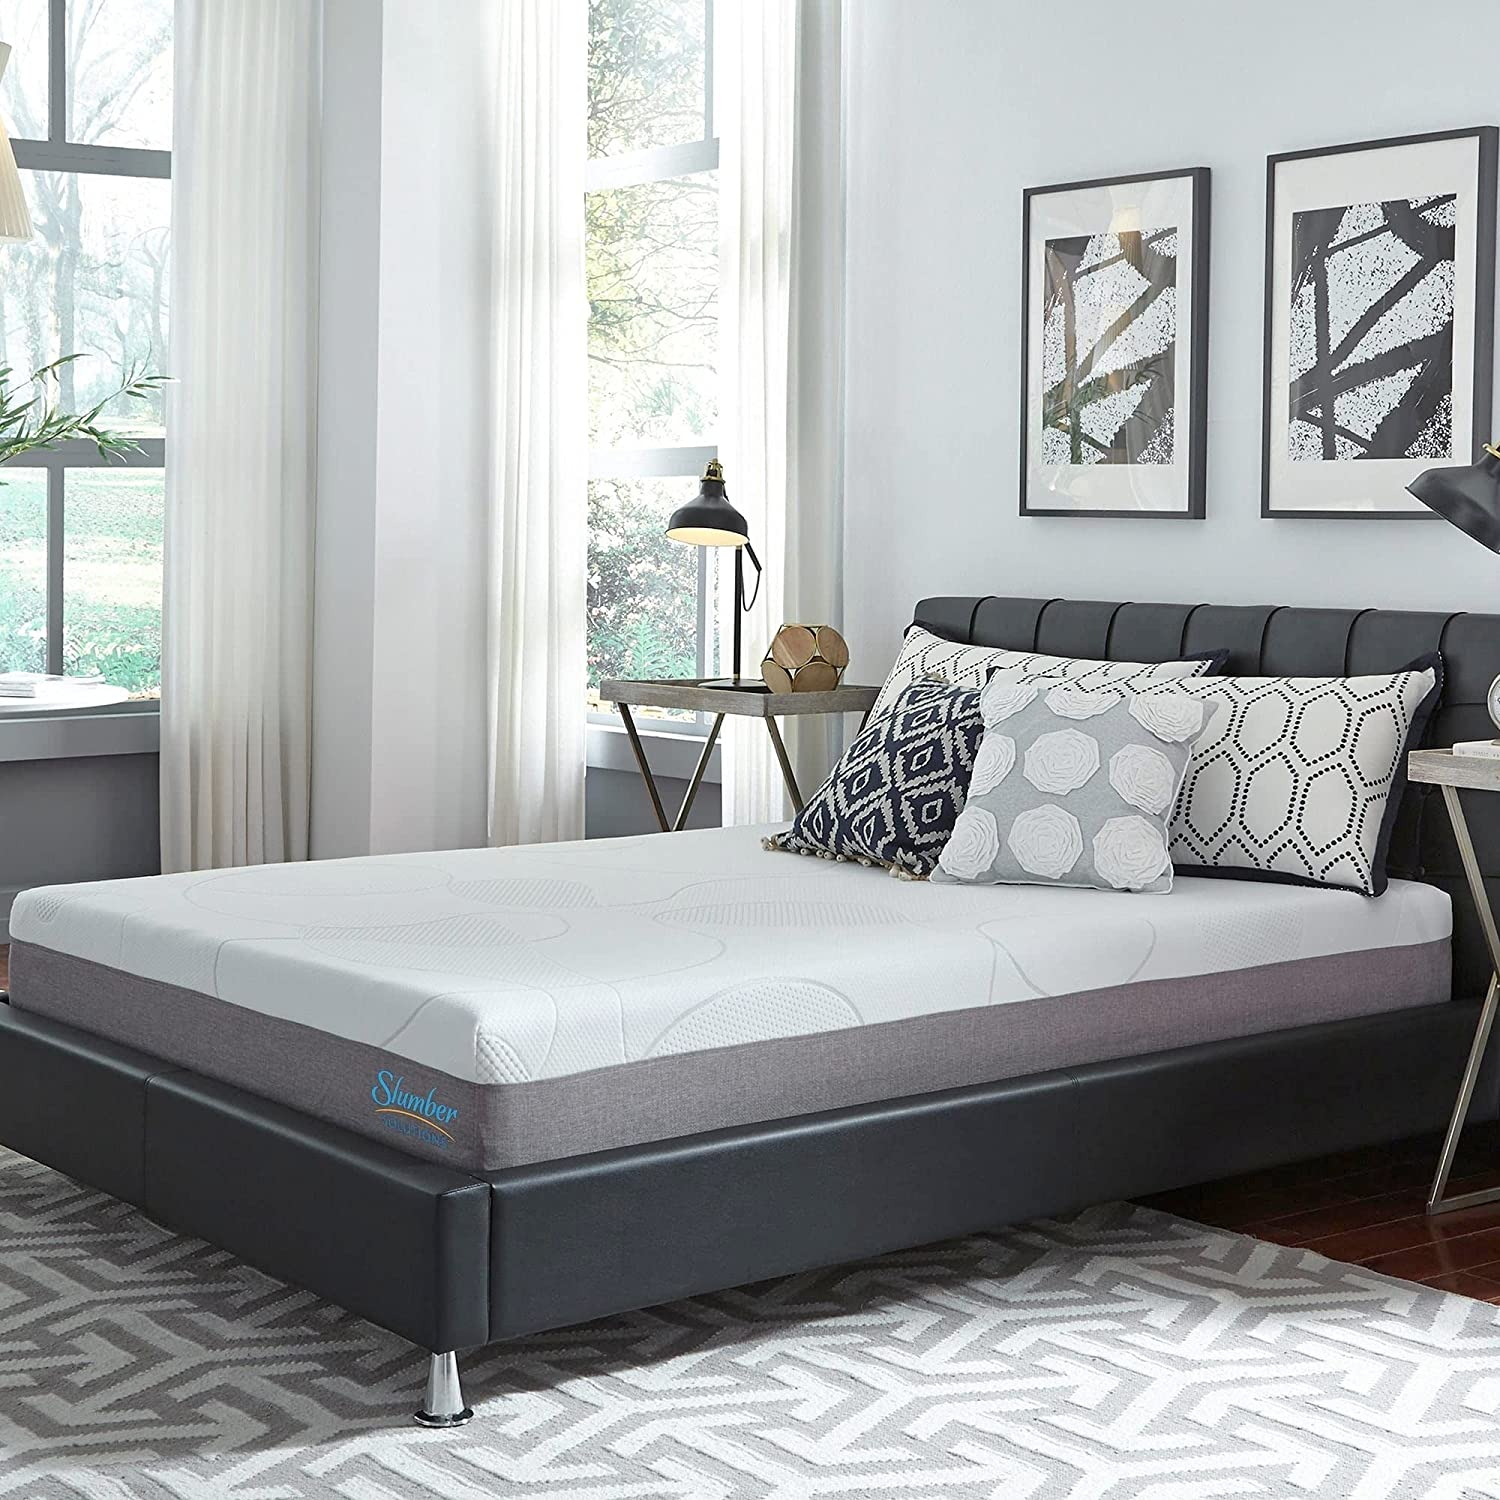 Slumber Solutions 10-inch Gel shopping Memory Foam Choose Comfort Your Tampa Mall Ma